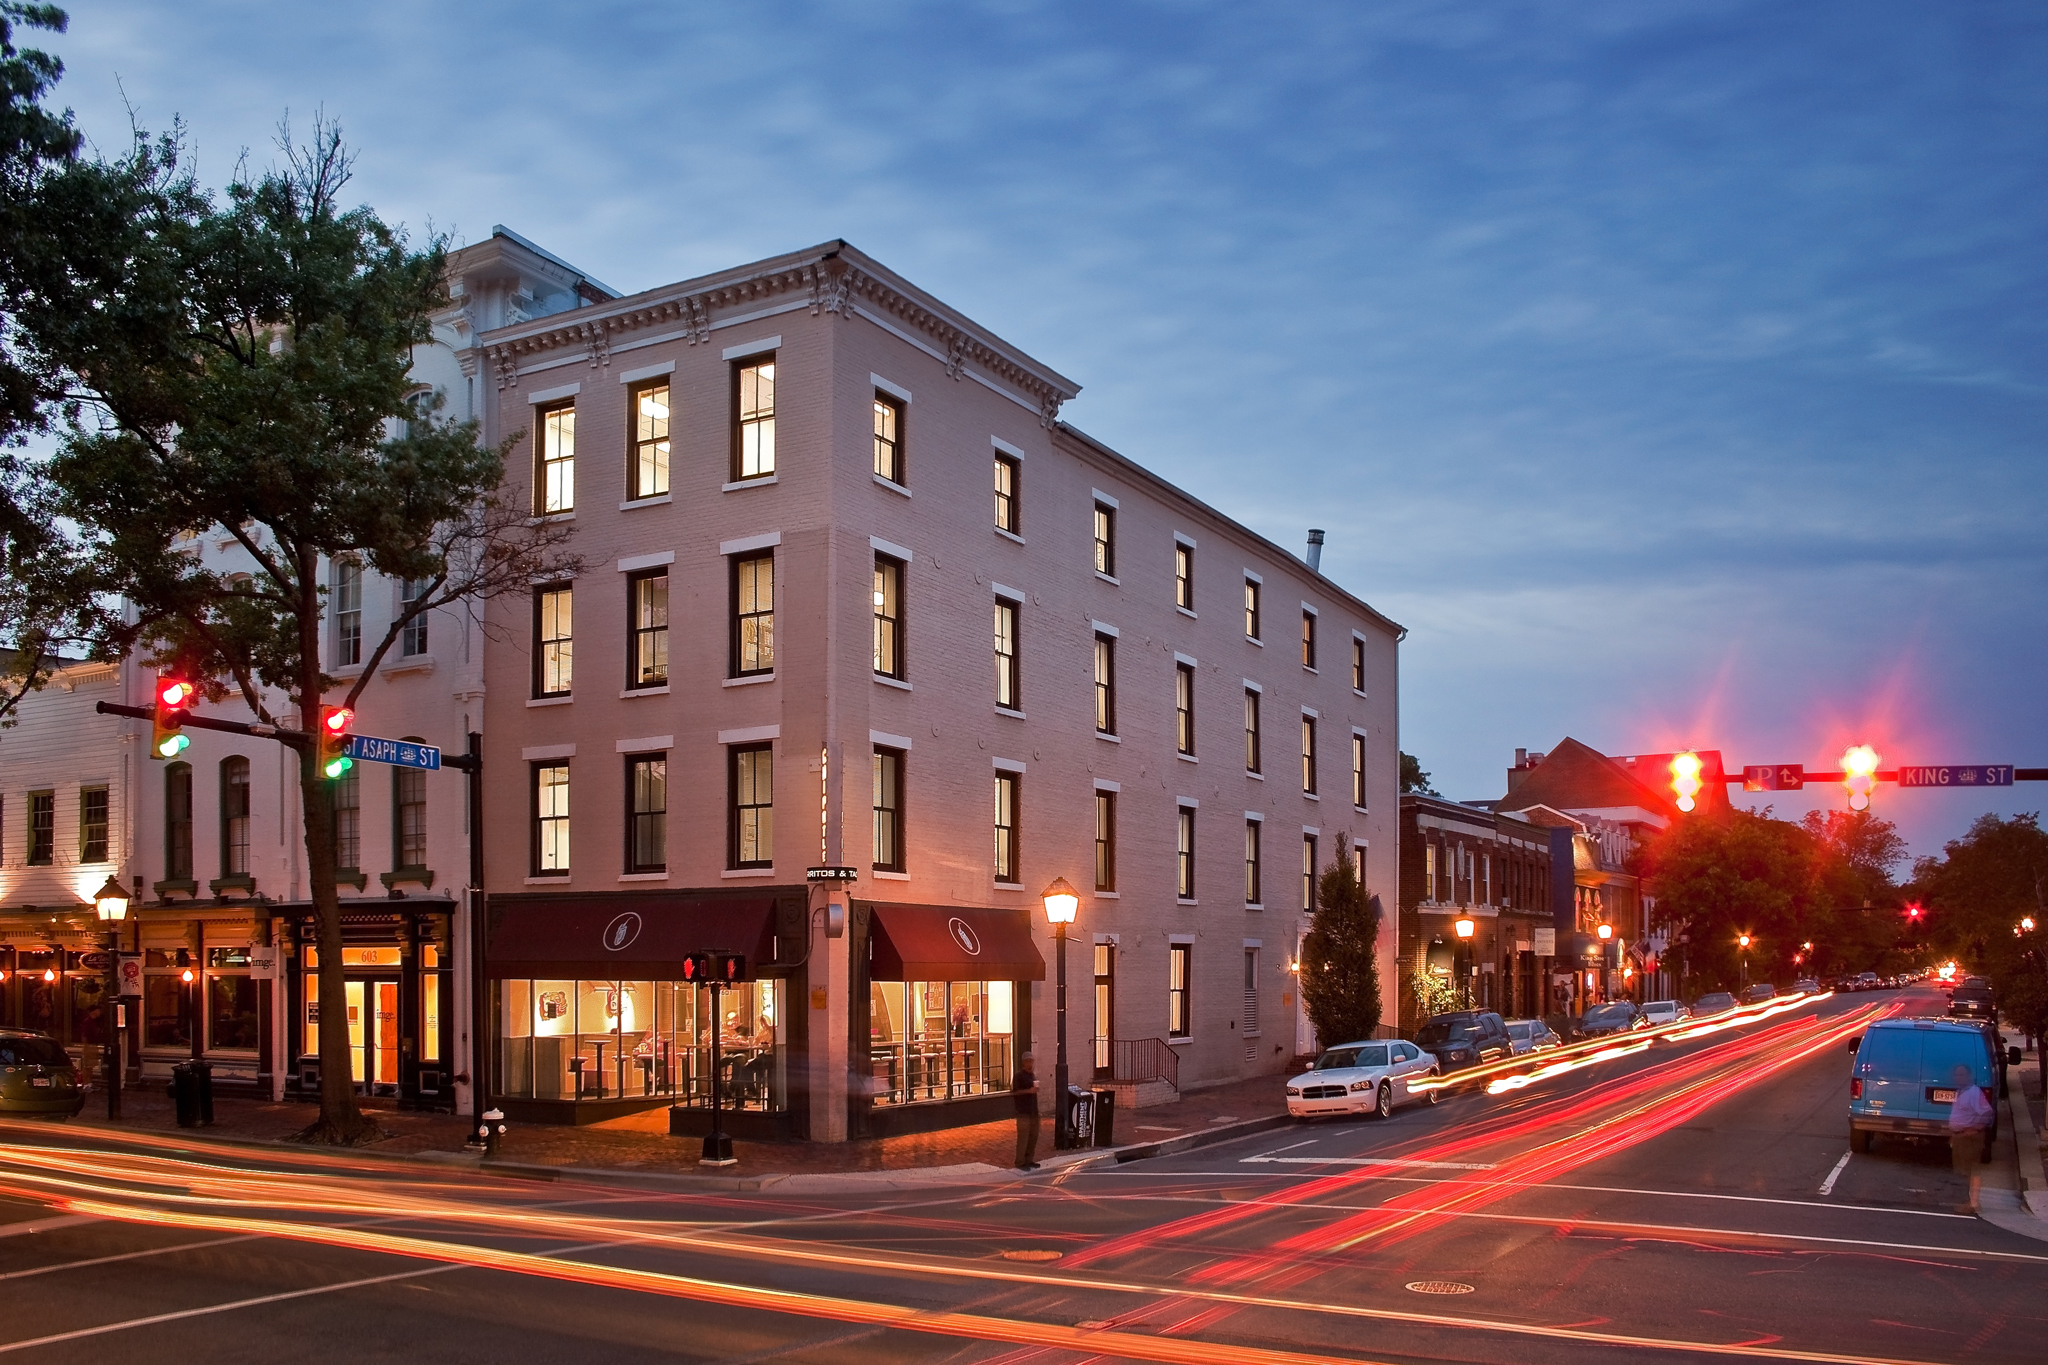 A historic gem in the heart of old town gets a major renovation and rebranding into a boutique high end executive office space highlighting the history of the building